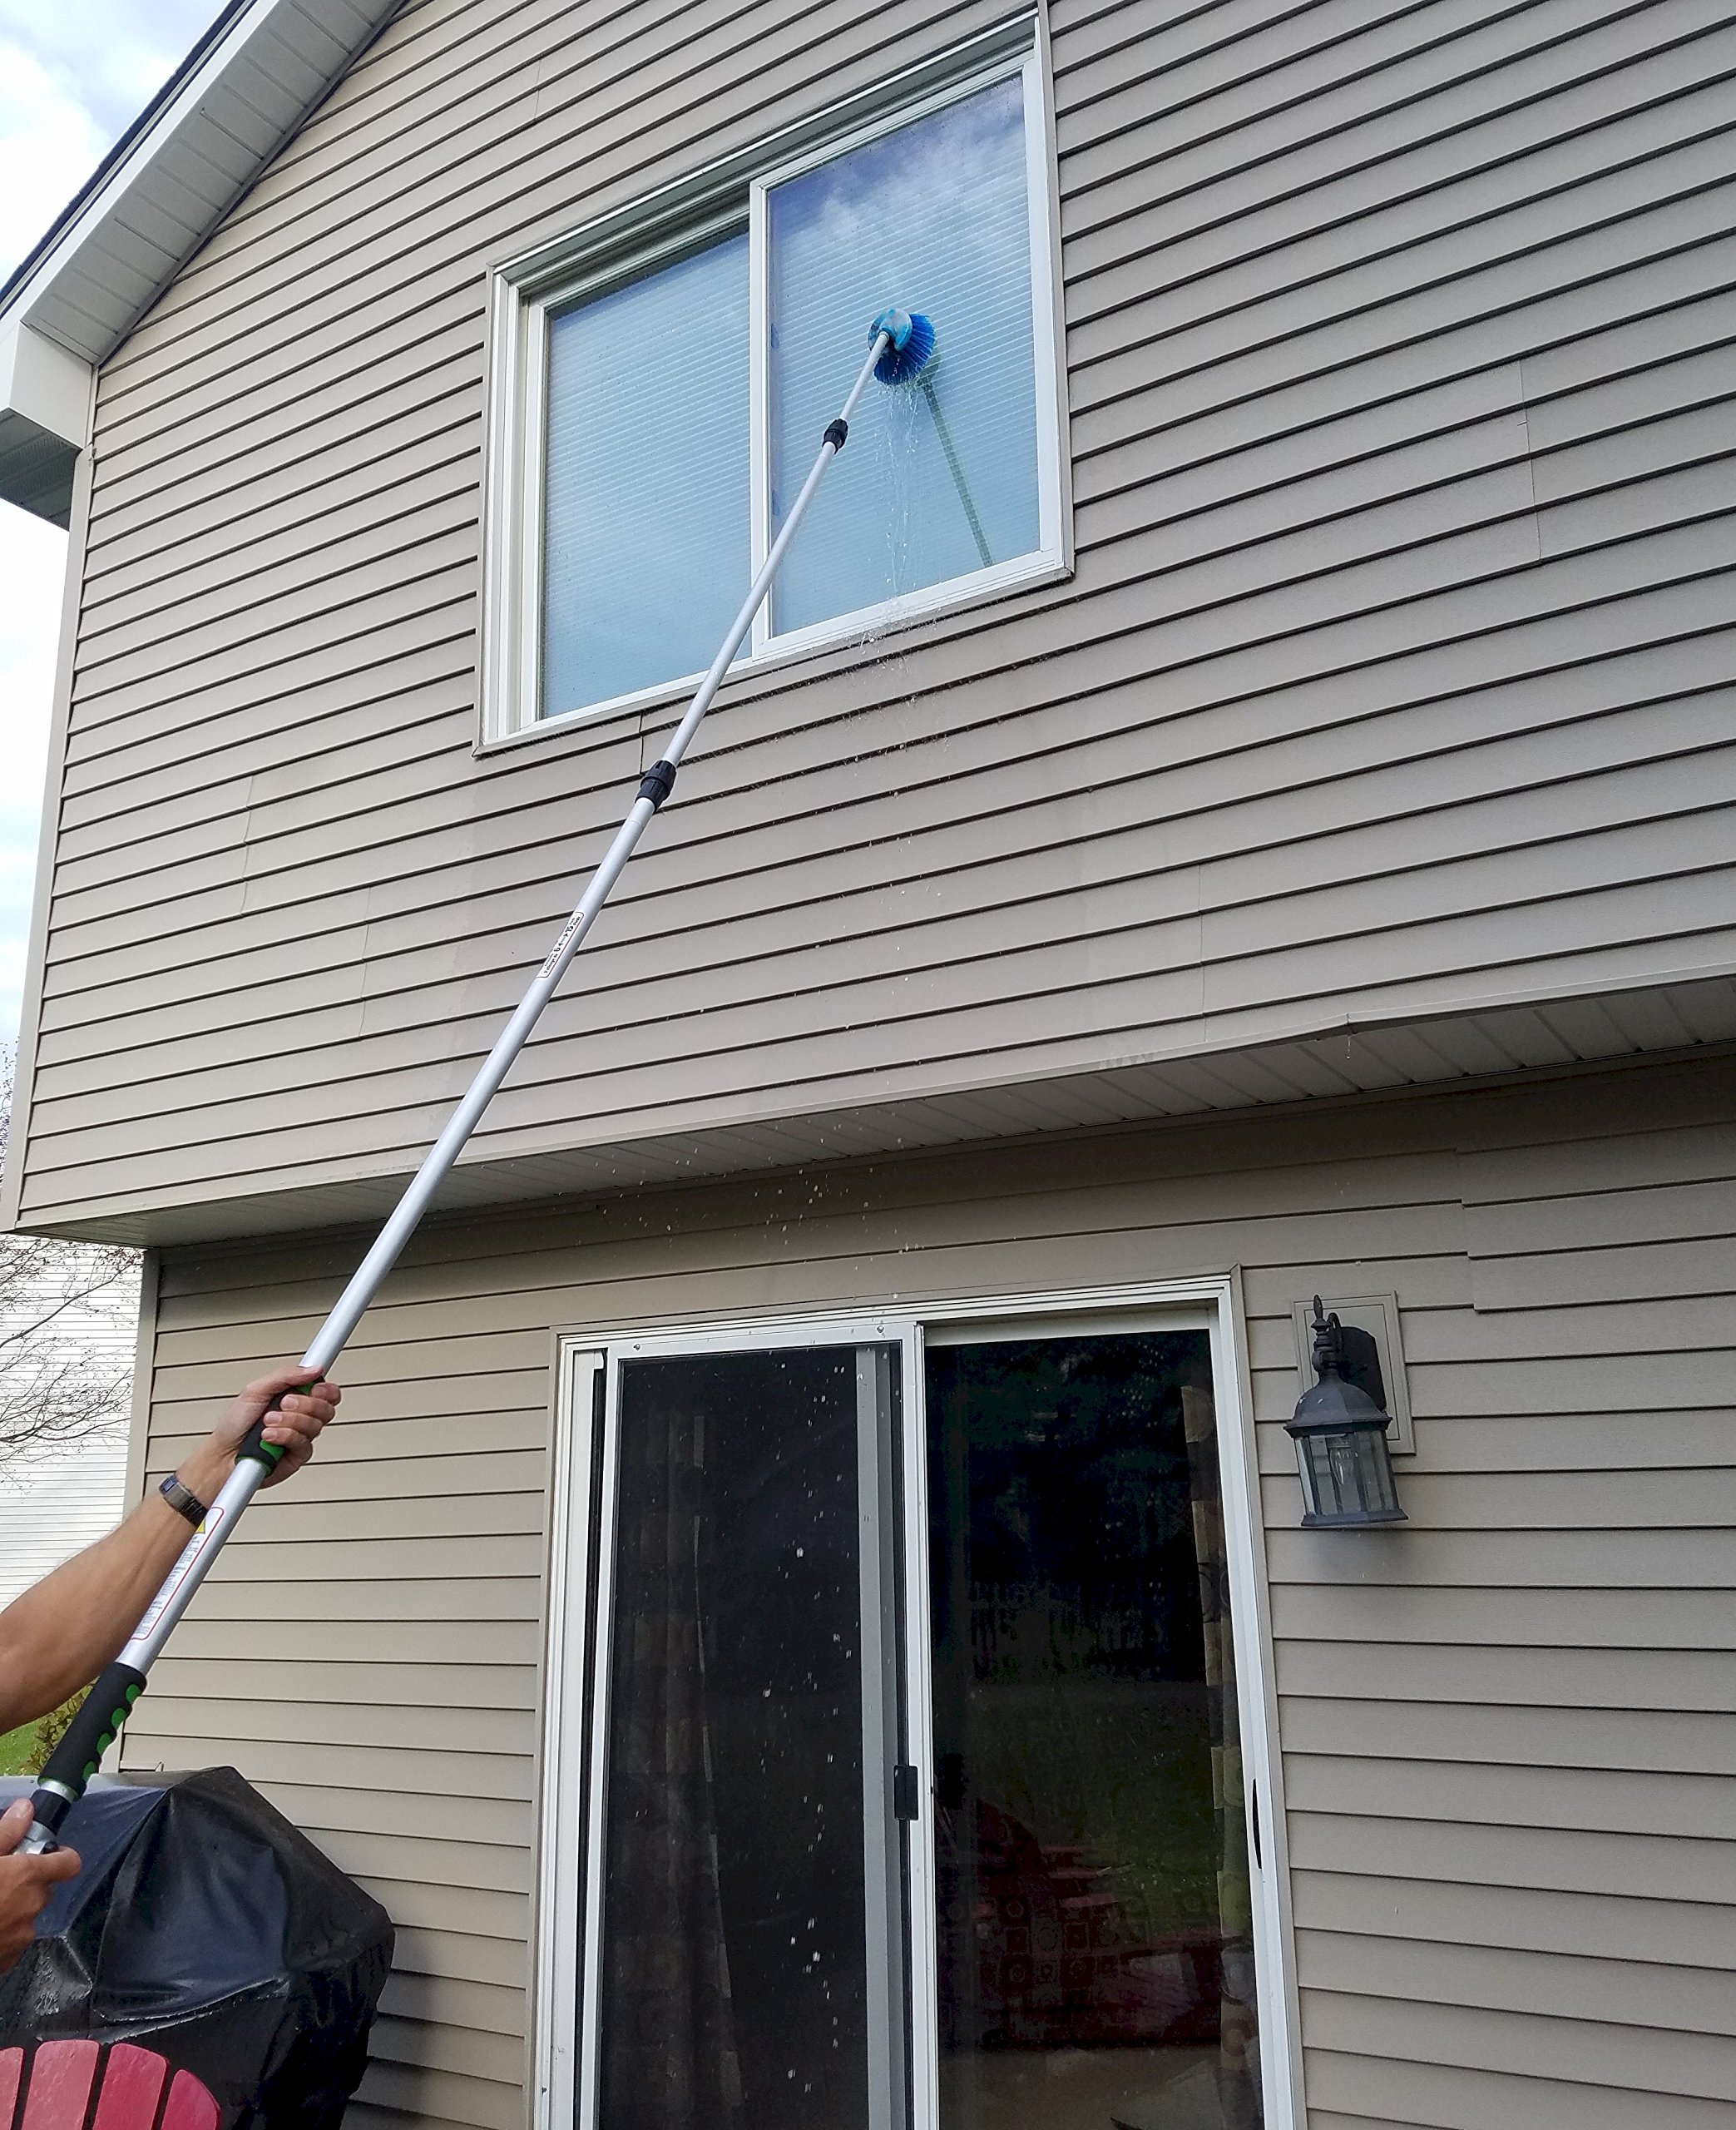 Ezy Flo Deluxe High Reach Gutter/Window/Patio Cleaning Kit by Ezy Flo (Image #9)